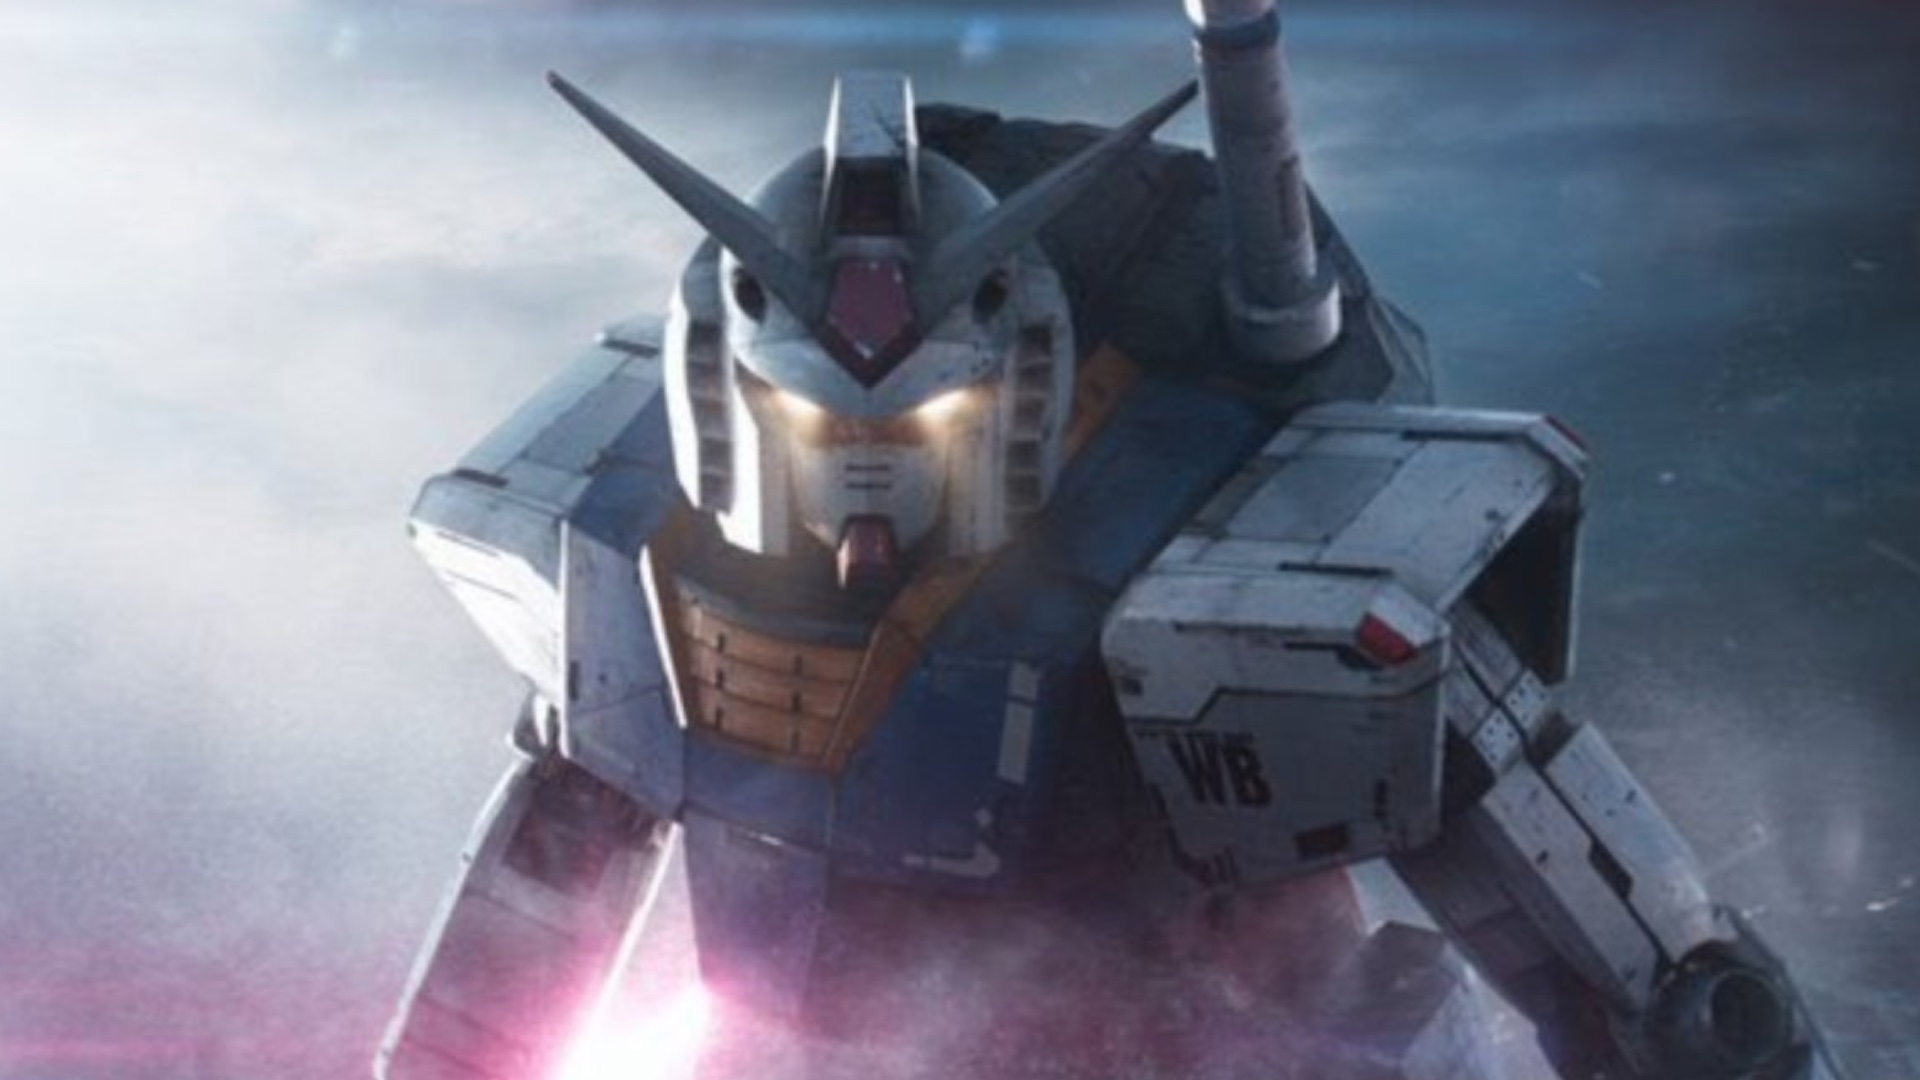 Legendary Creating Live Action Gundam Movie Yournerdside Yournerdside Subscribe To Podcast Today Your Nerd Side The Show